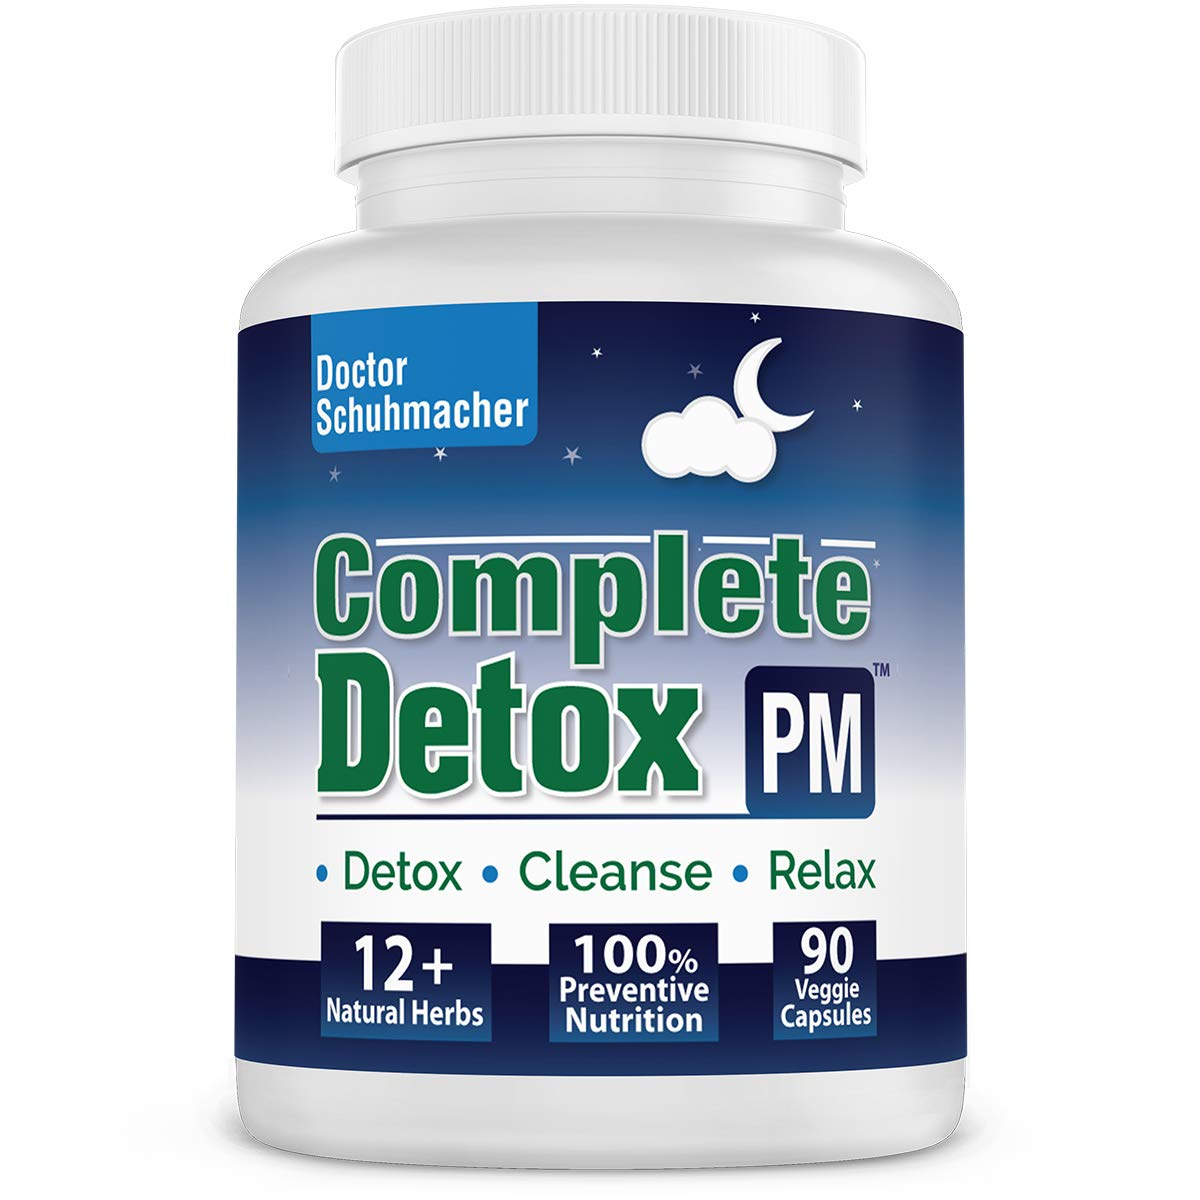 Longevity Complete Detox [PM] - Rapid Whole Body Detox with Support for Liver Detox, Colon Detox, Lymph Detox, Kidney Cleanse